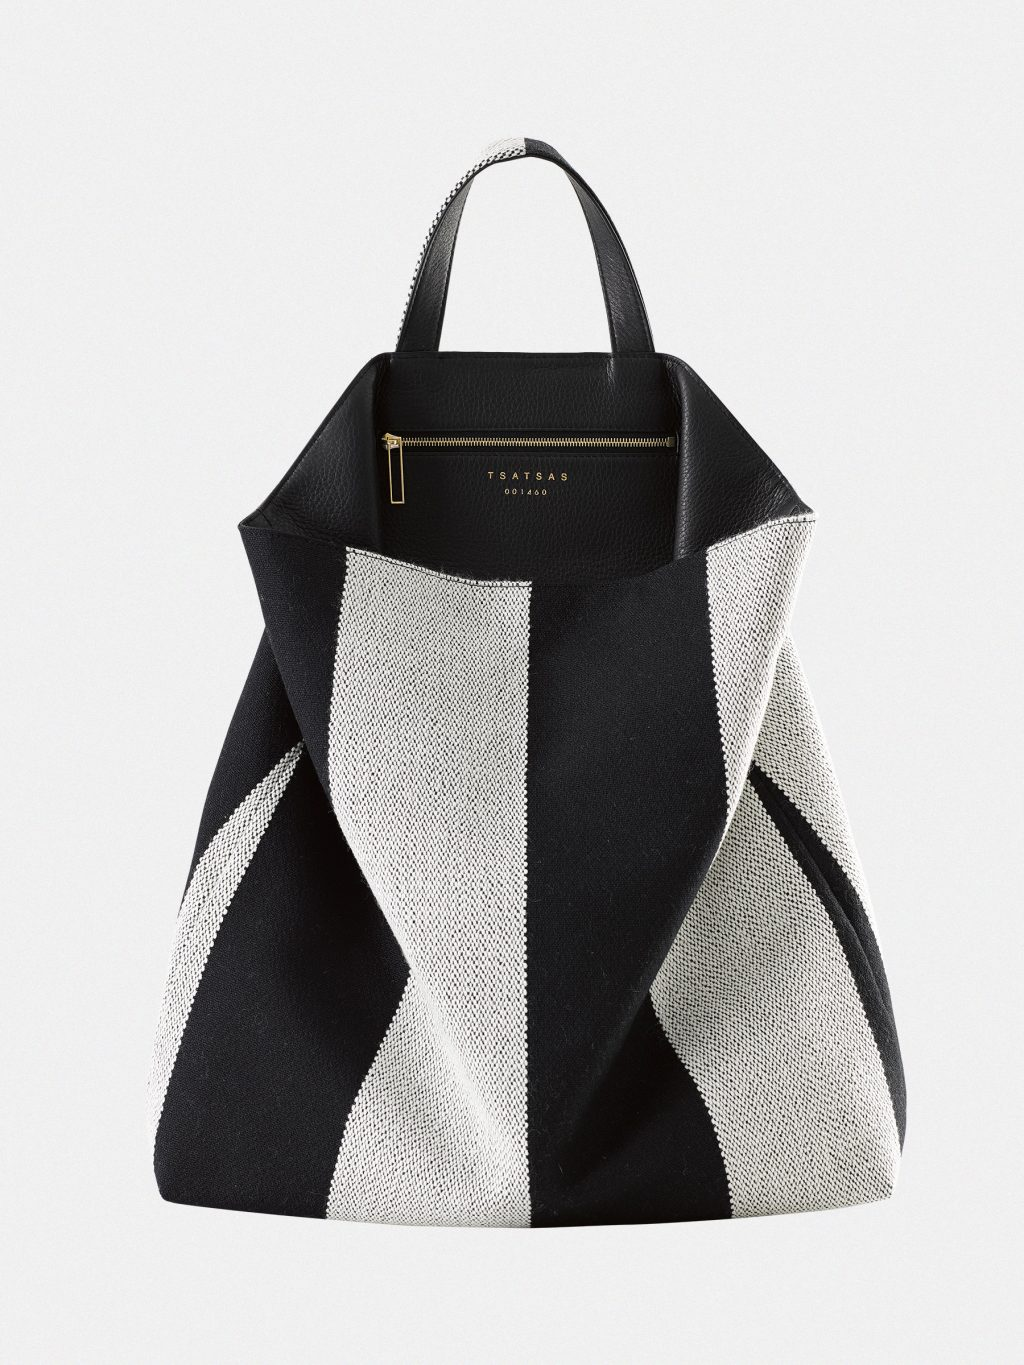 TSATSAS SO_FAR, a limited edition with textiles by Raf Simons for Kvadrat